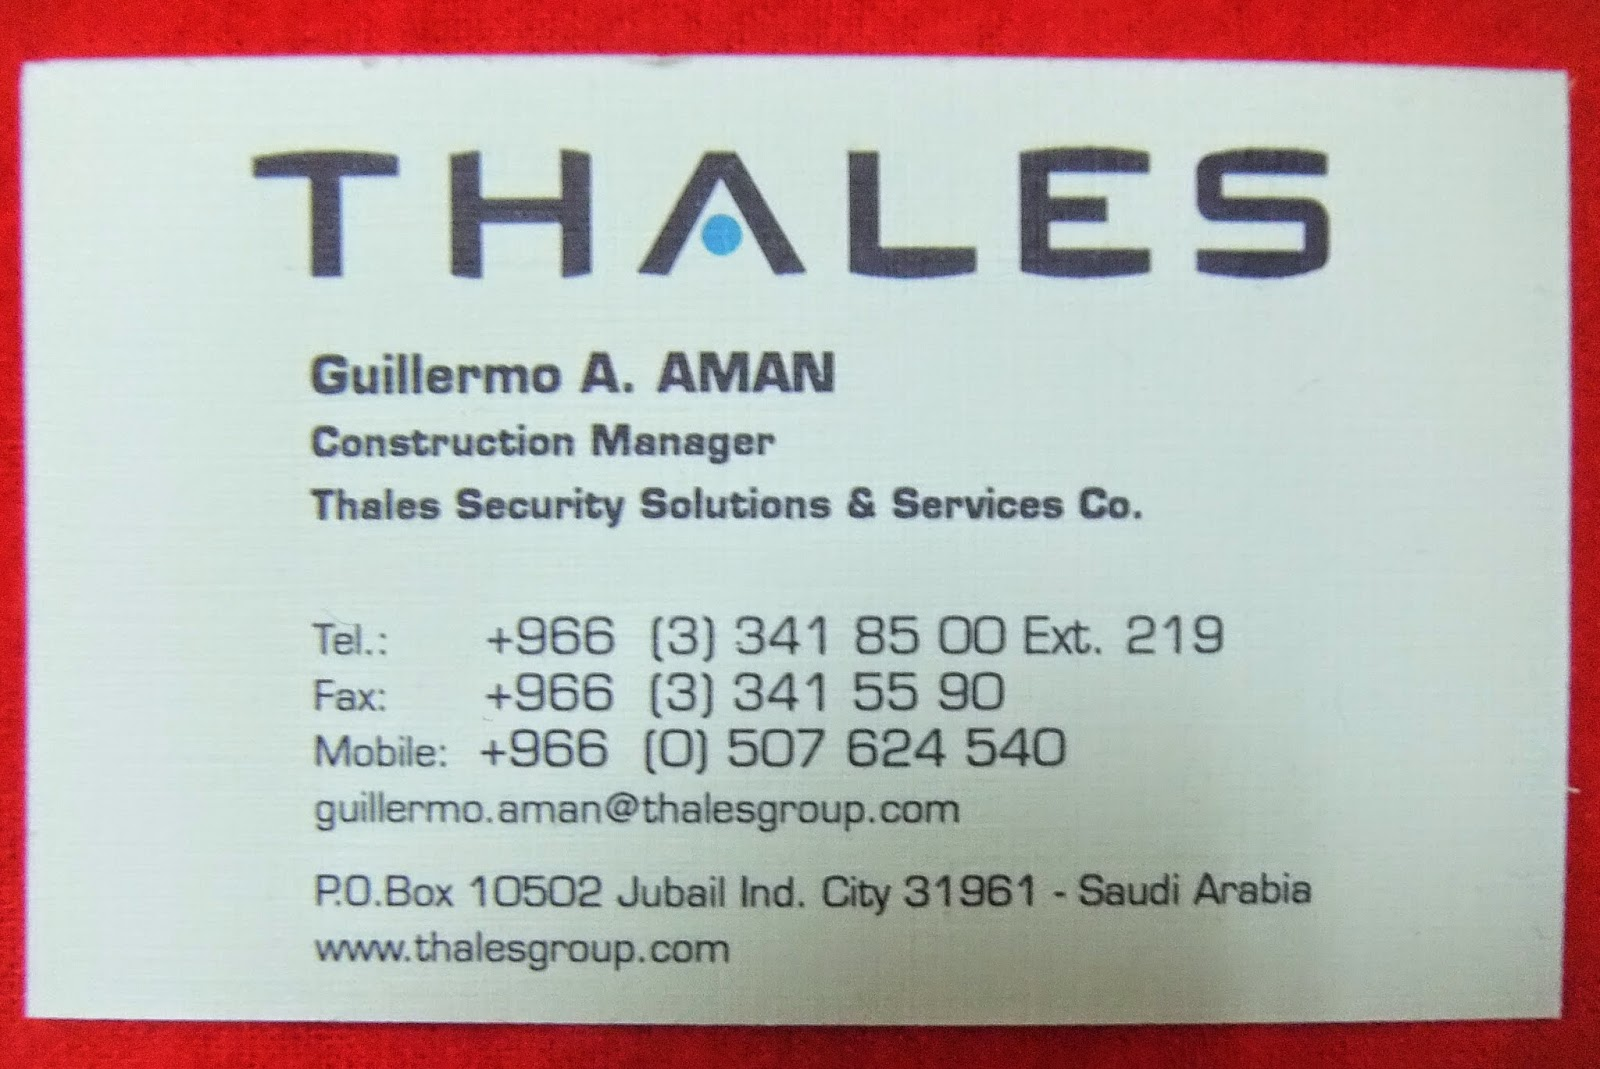 GUILLERMO ARGAME AMAN: Thales Security Solutions & Services Company